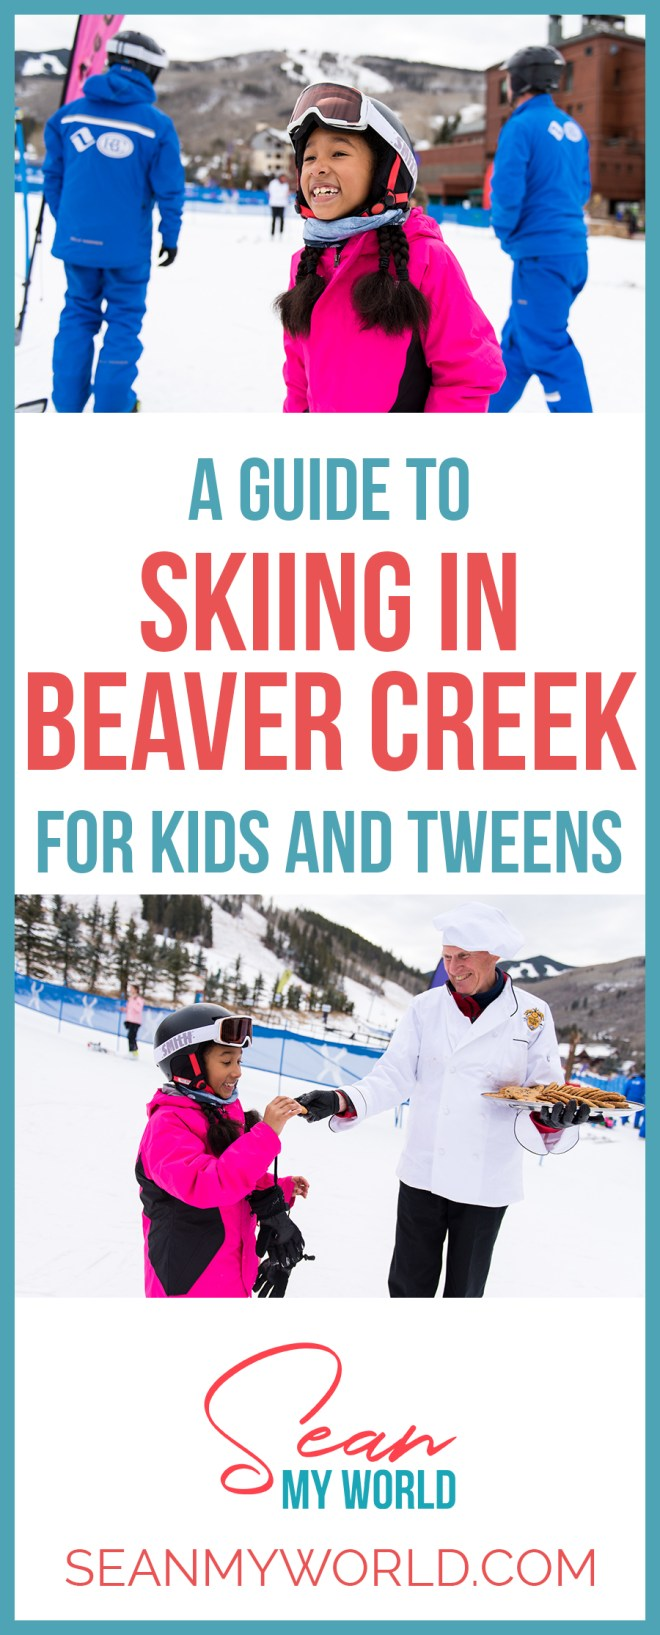 Beaver Creek skiing is an experience every kid should have! In this video, my sister Ella and I head to Beaver Creek, Colorado and ski for the first time.